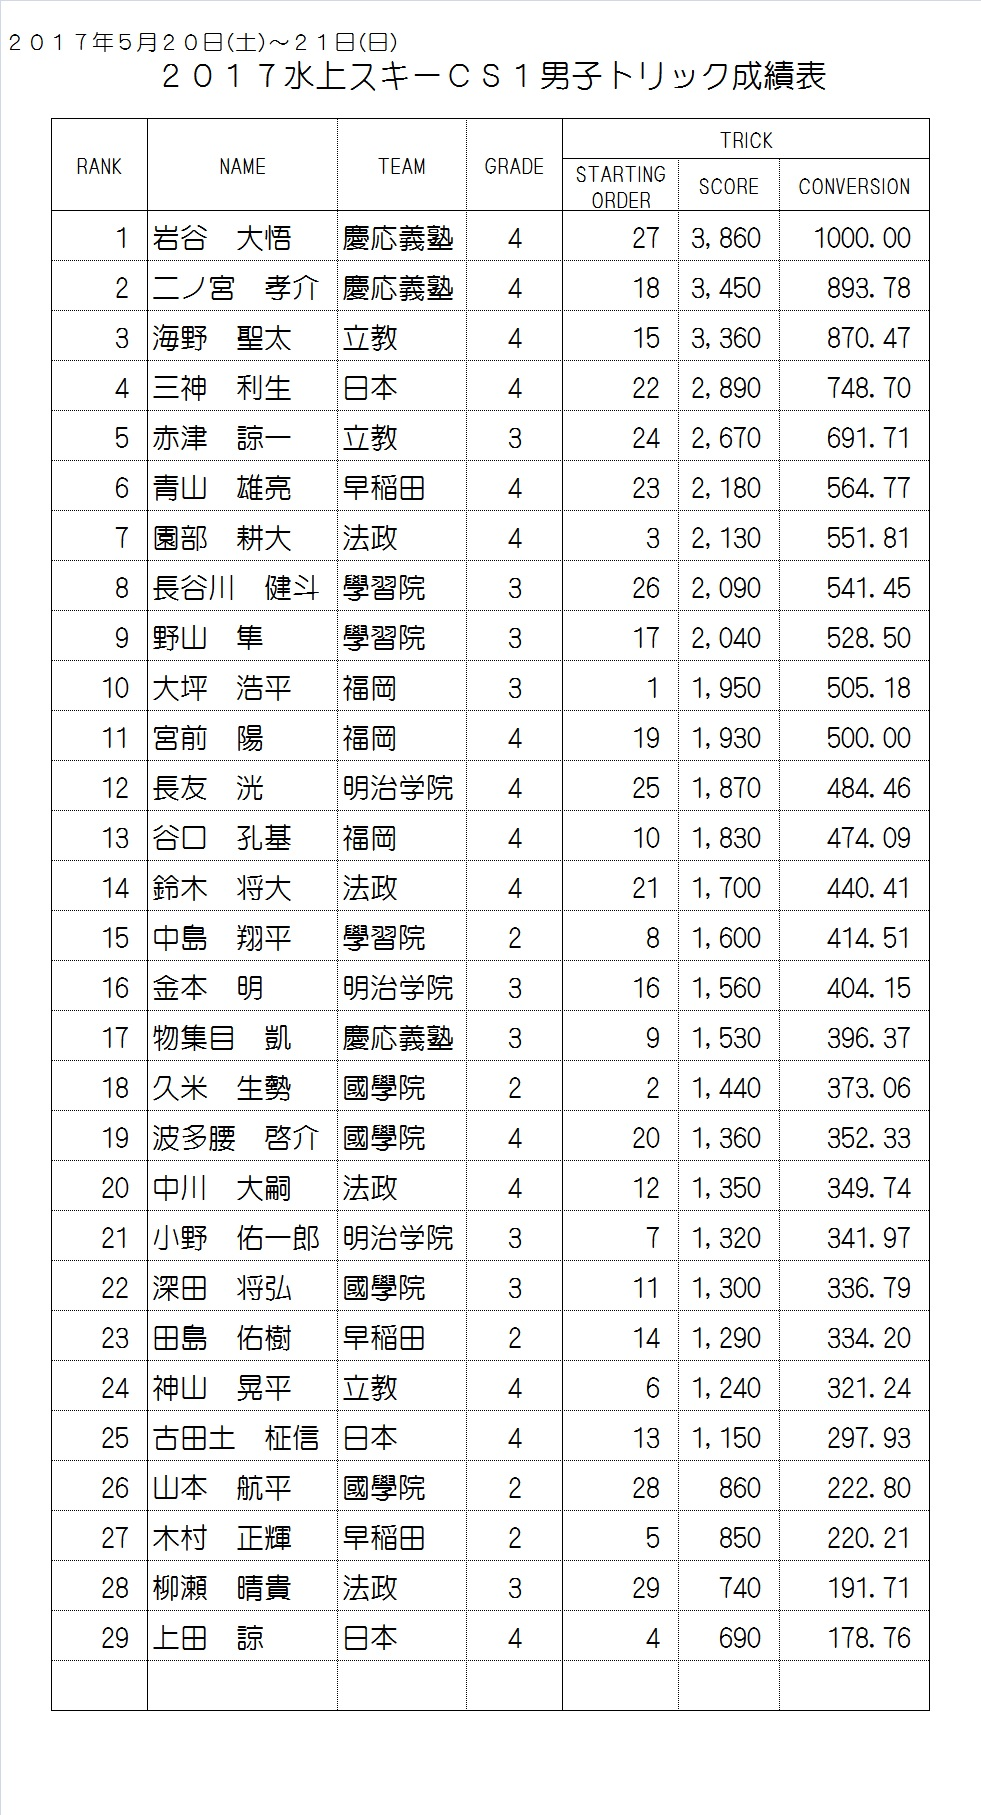 2017CS1 Men's Result Trick